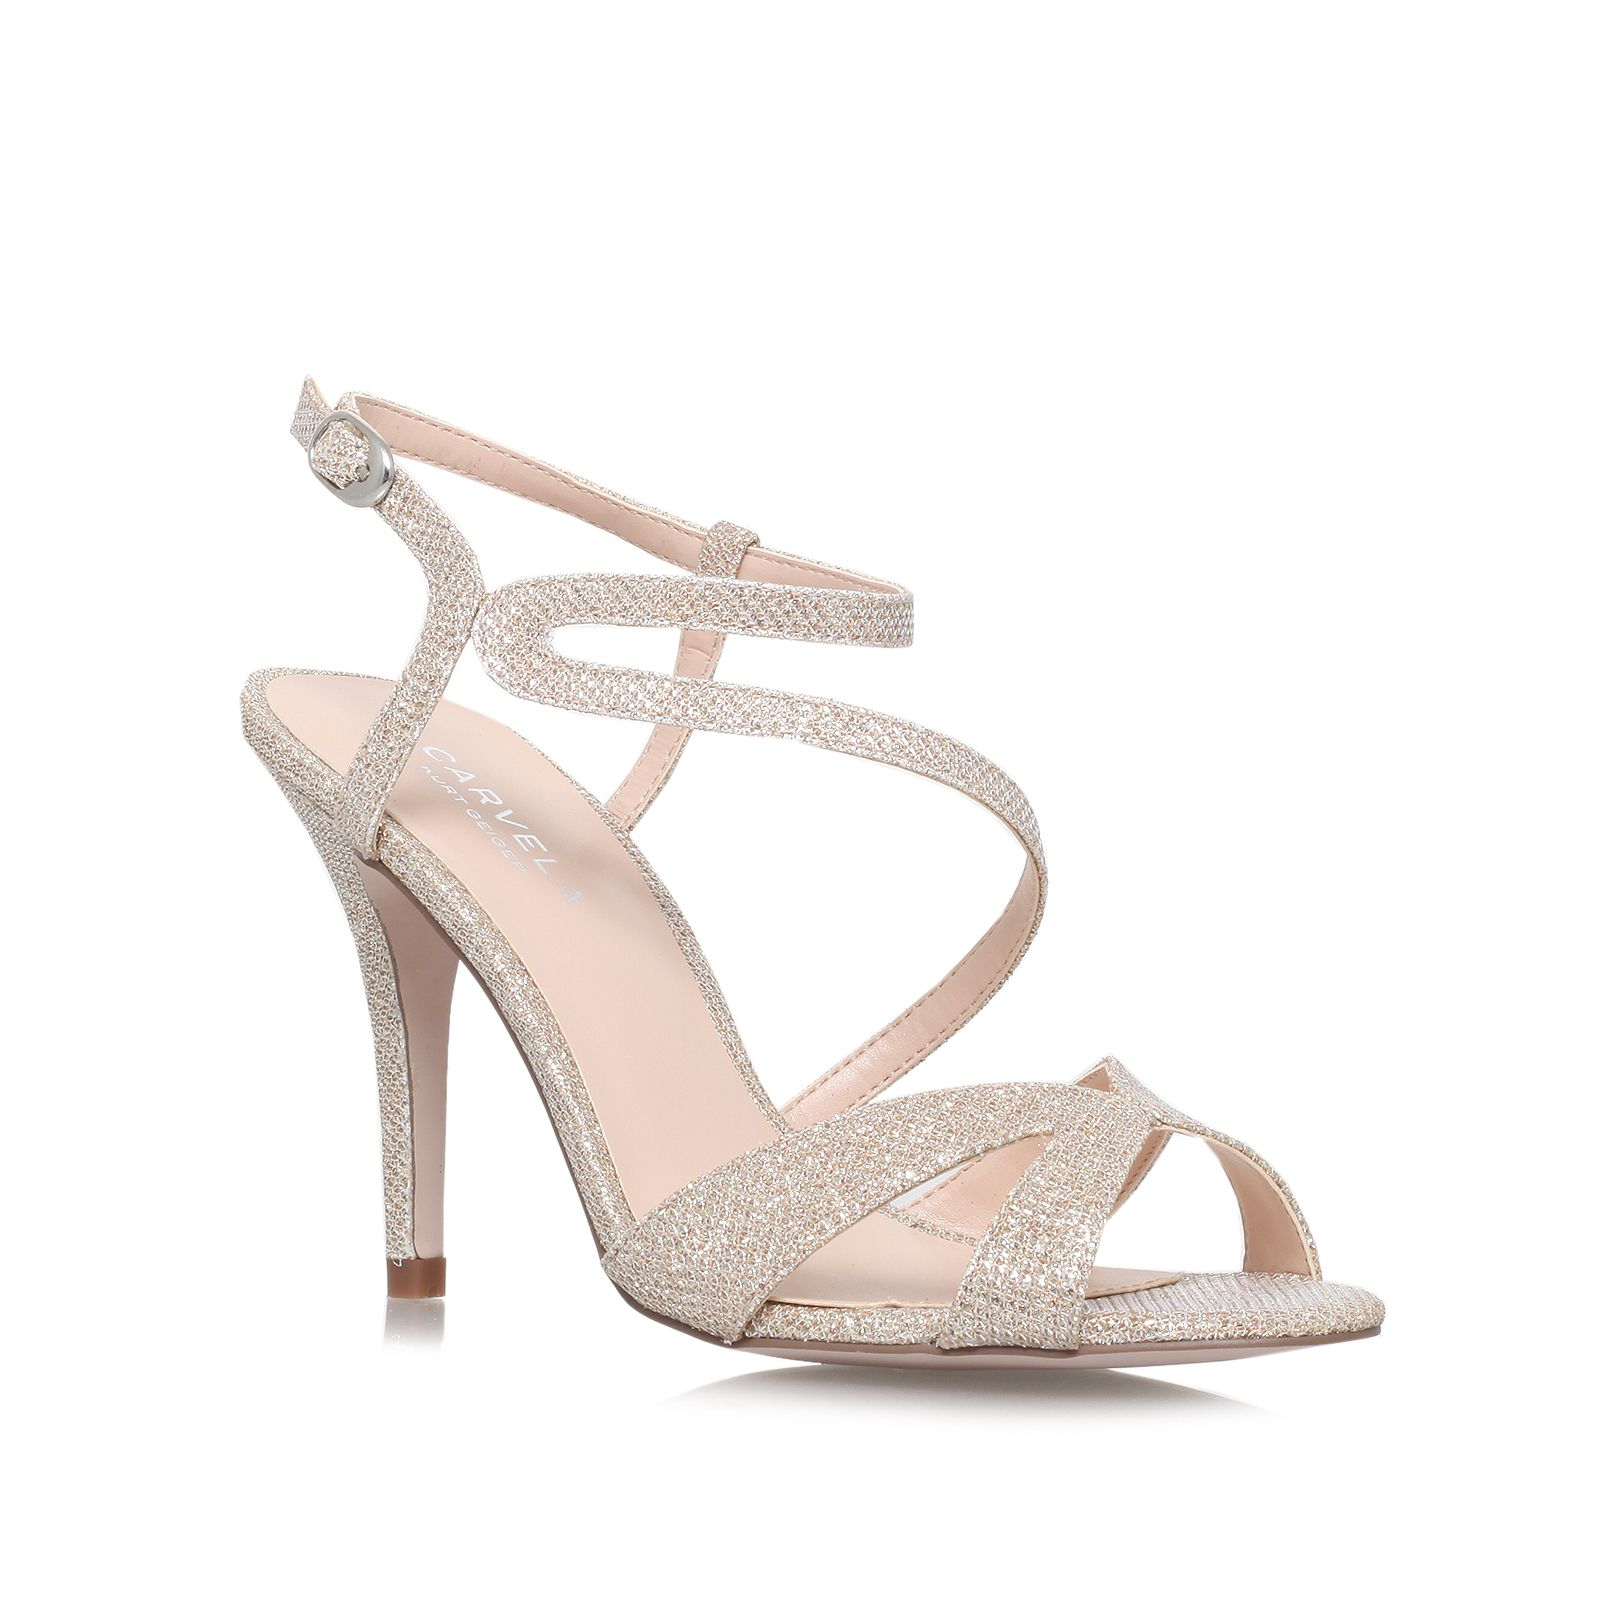 Kurt Geiger Uk Womens Shoes